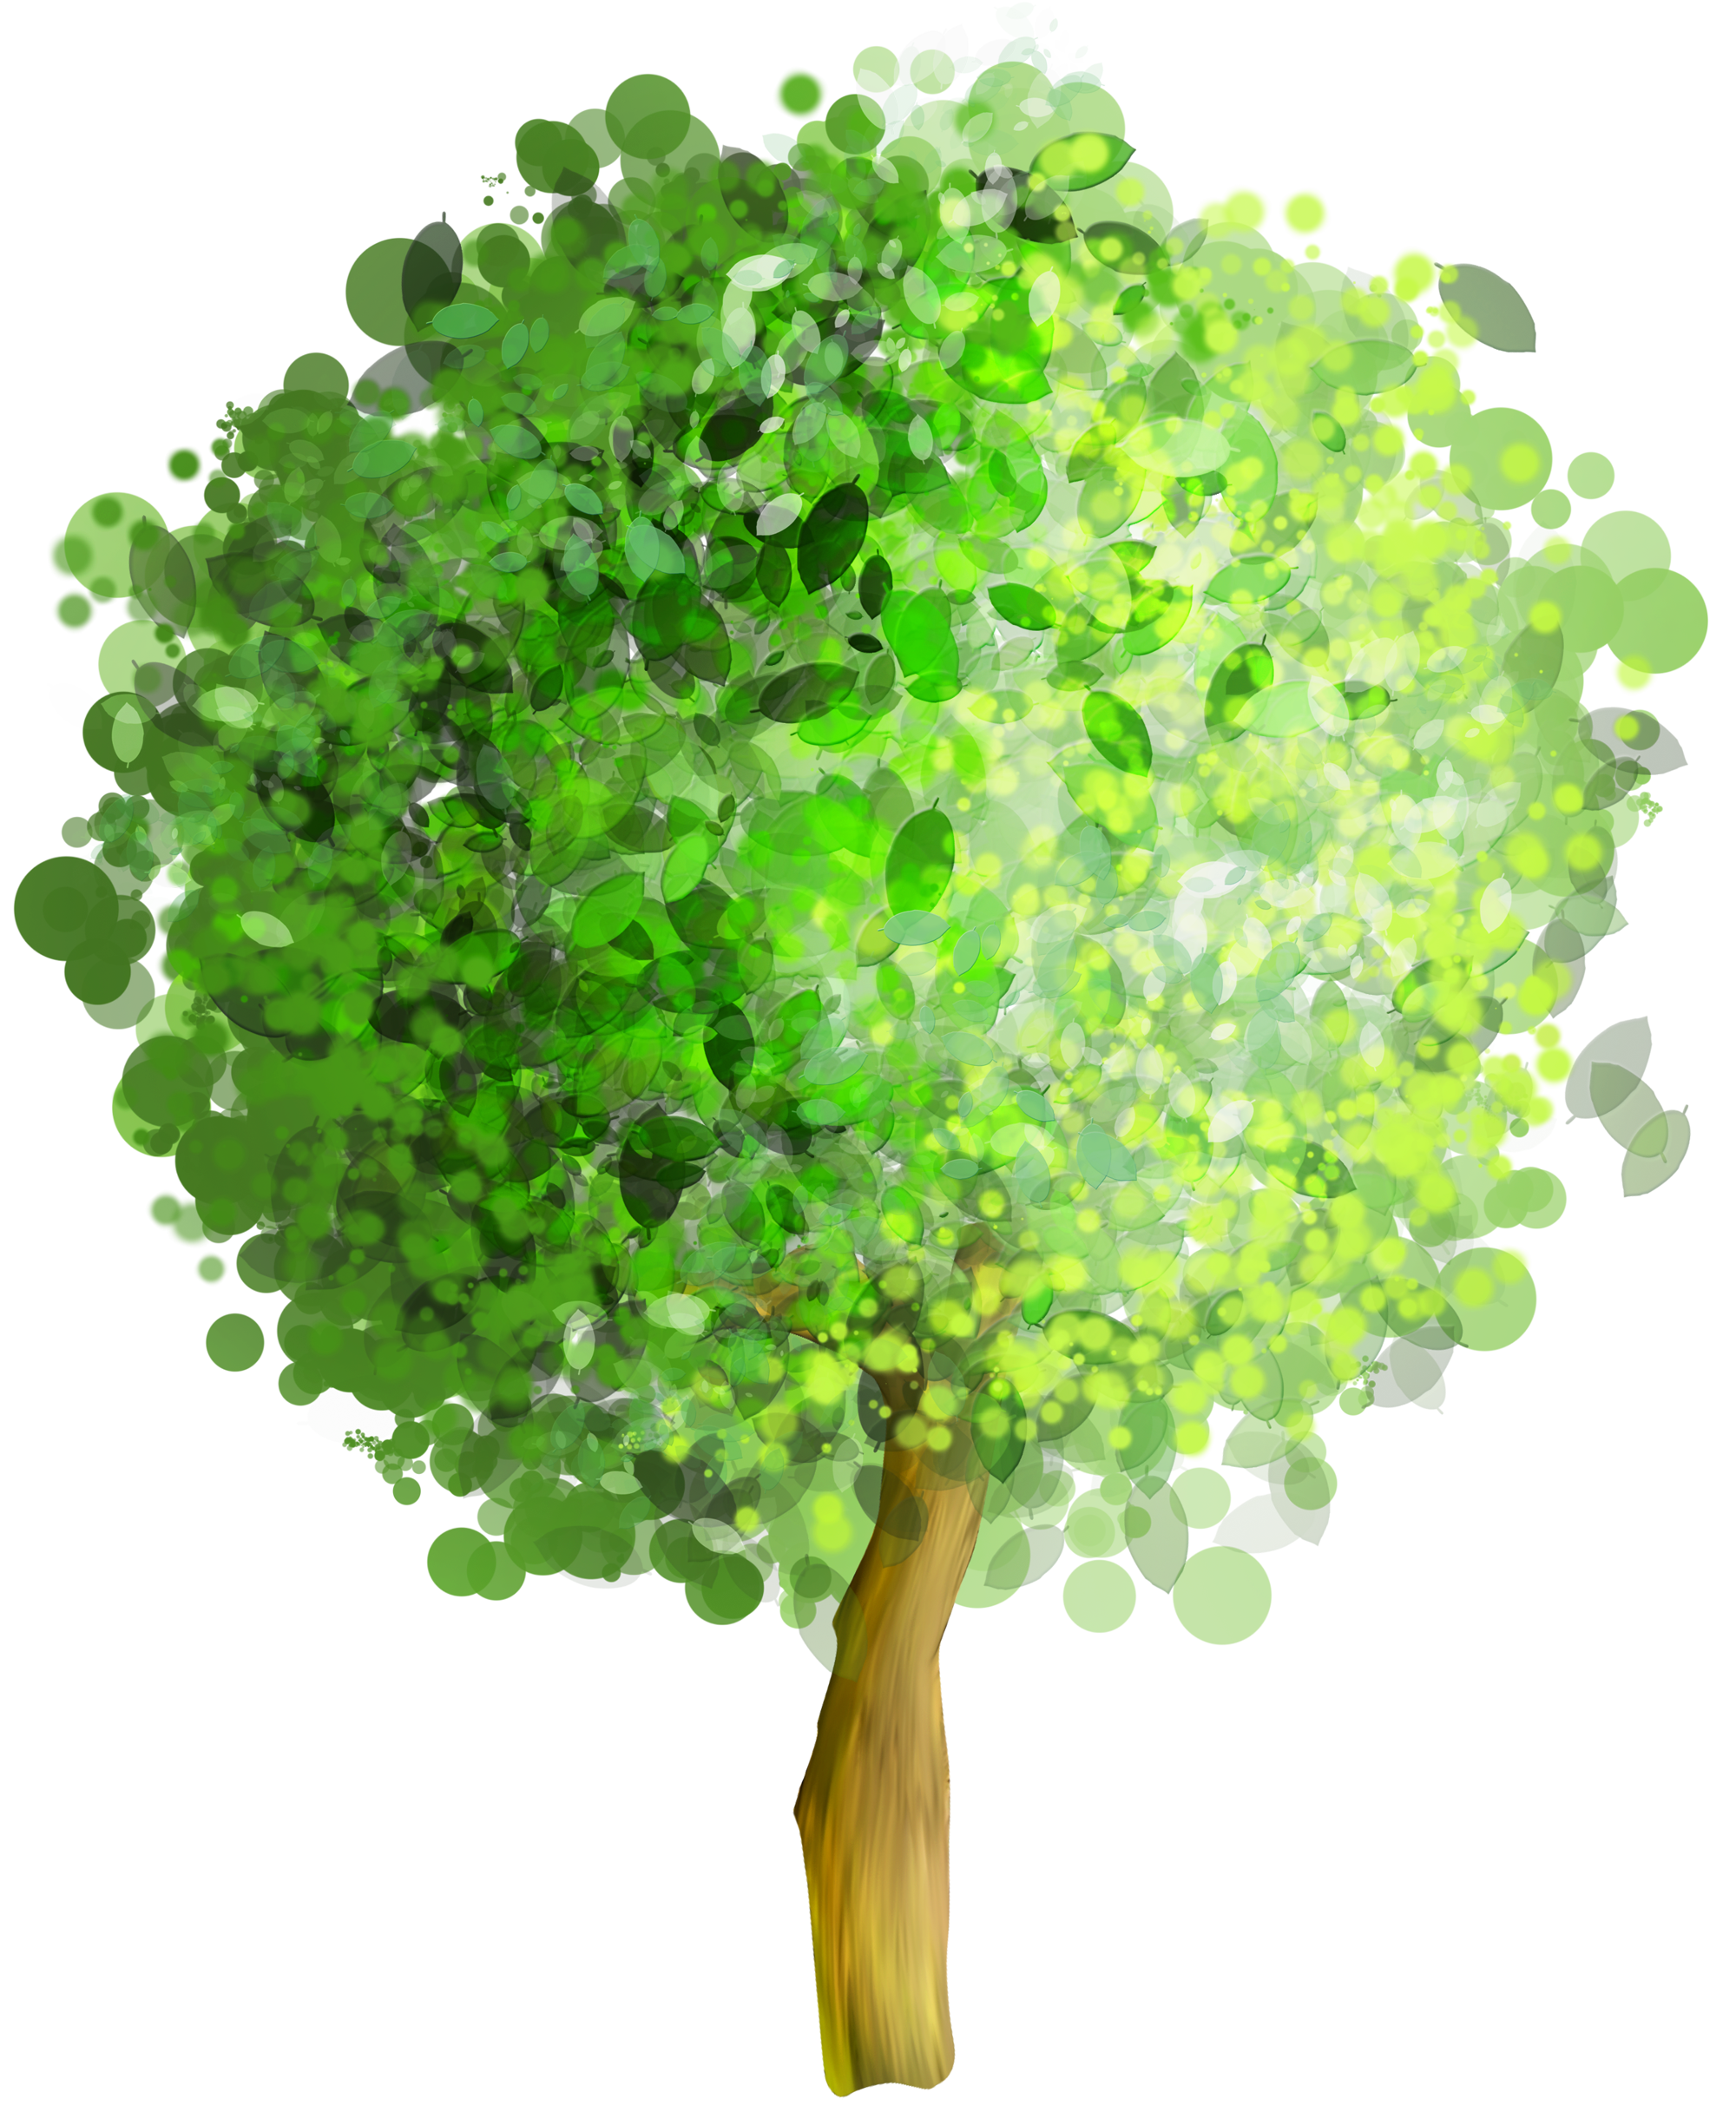 Tree art png. Green clipart gallery yopriceville